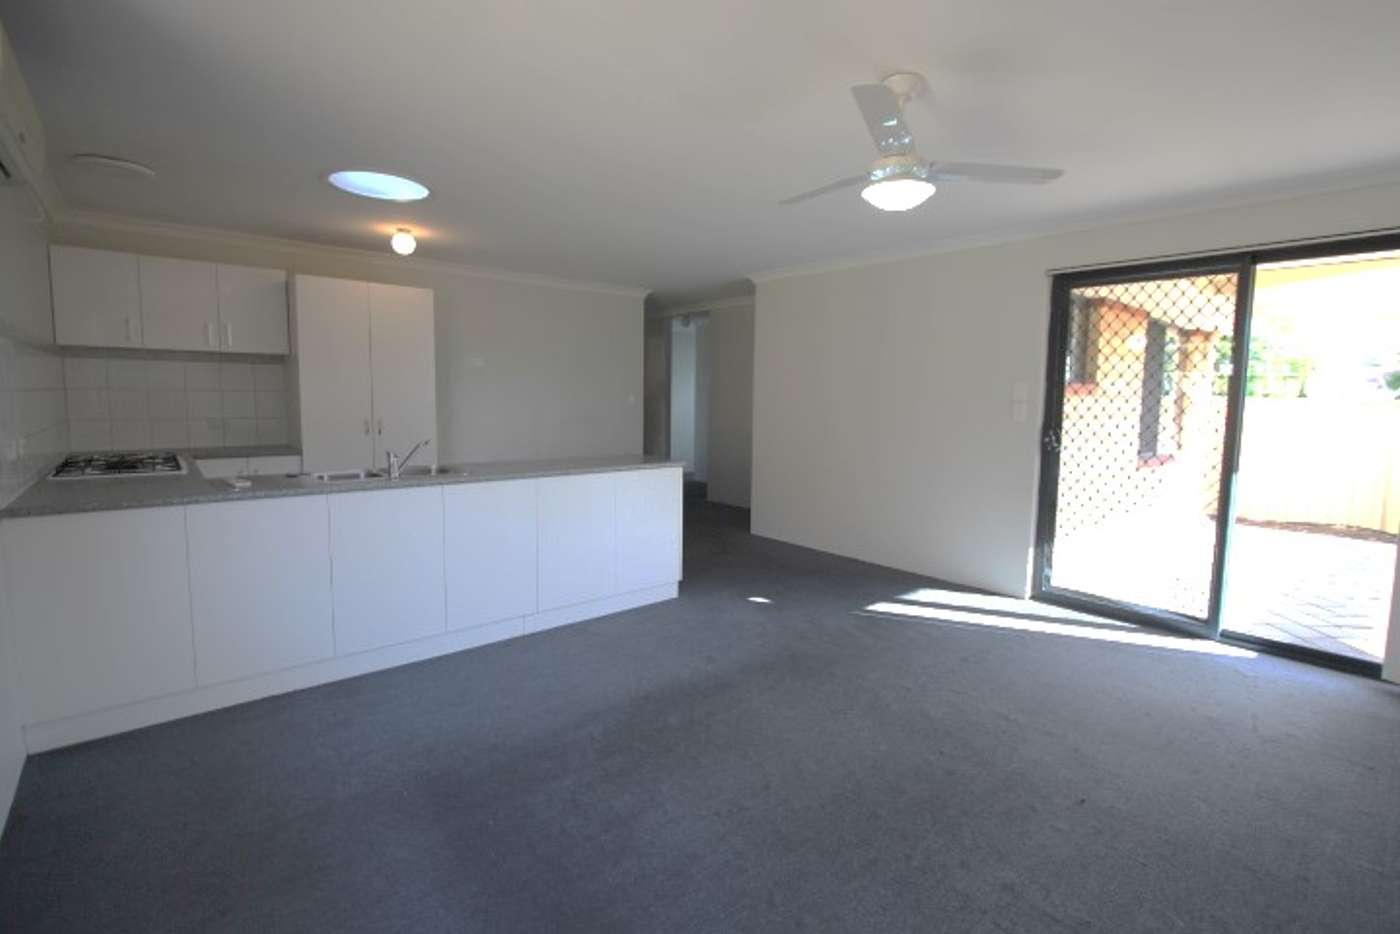 Seventh view of Homely house listing, 9 Stilt Cove, Cannington WA 6107